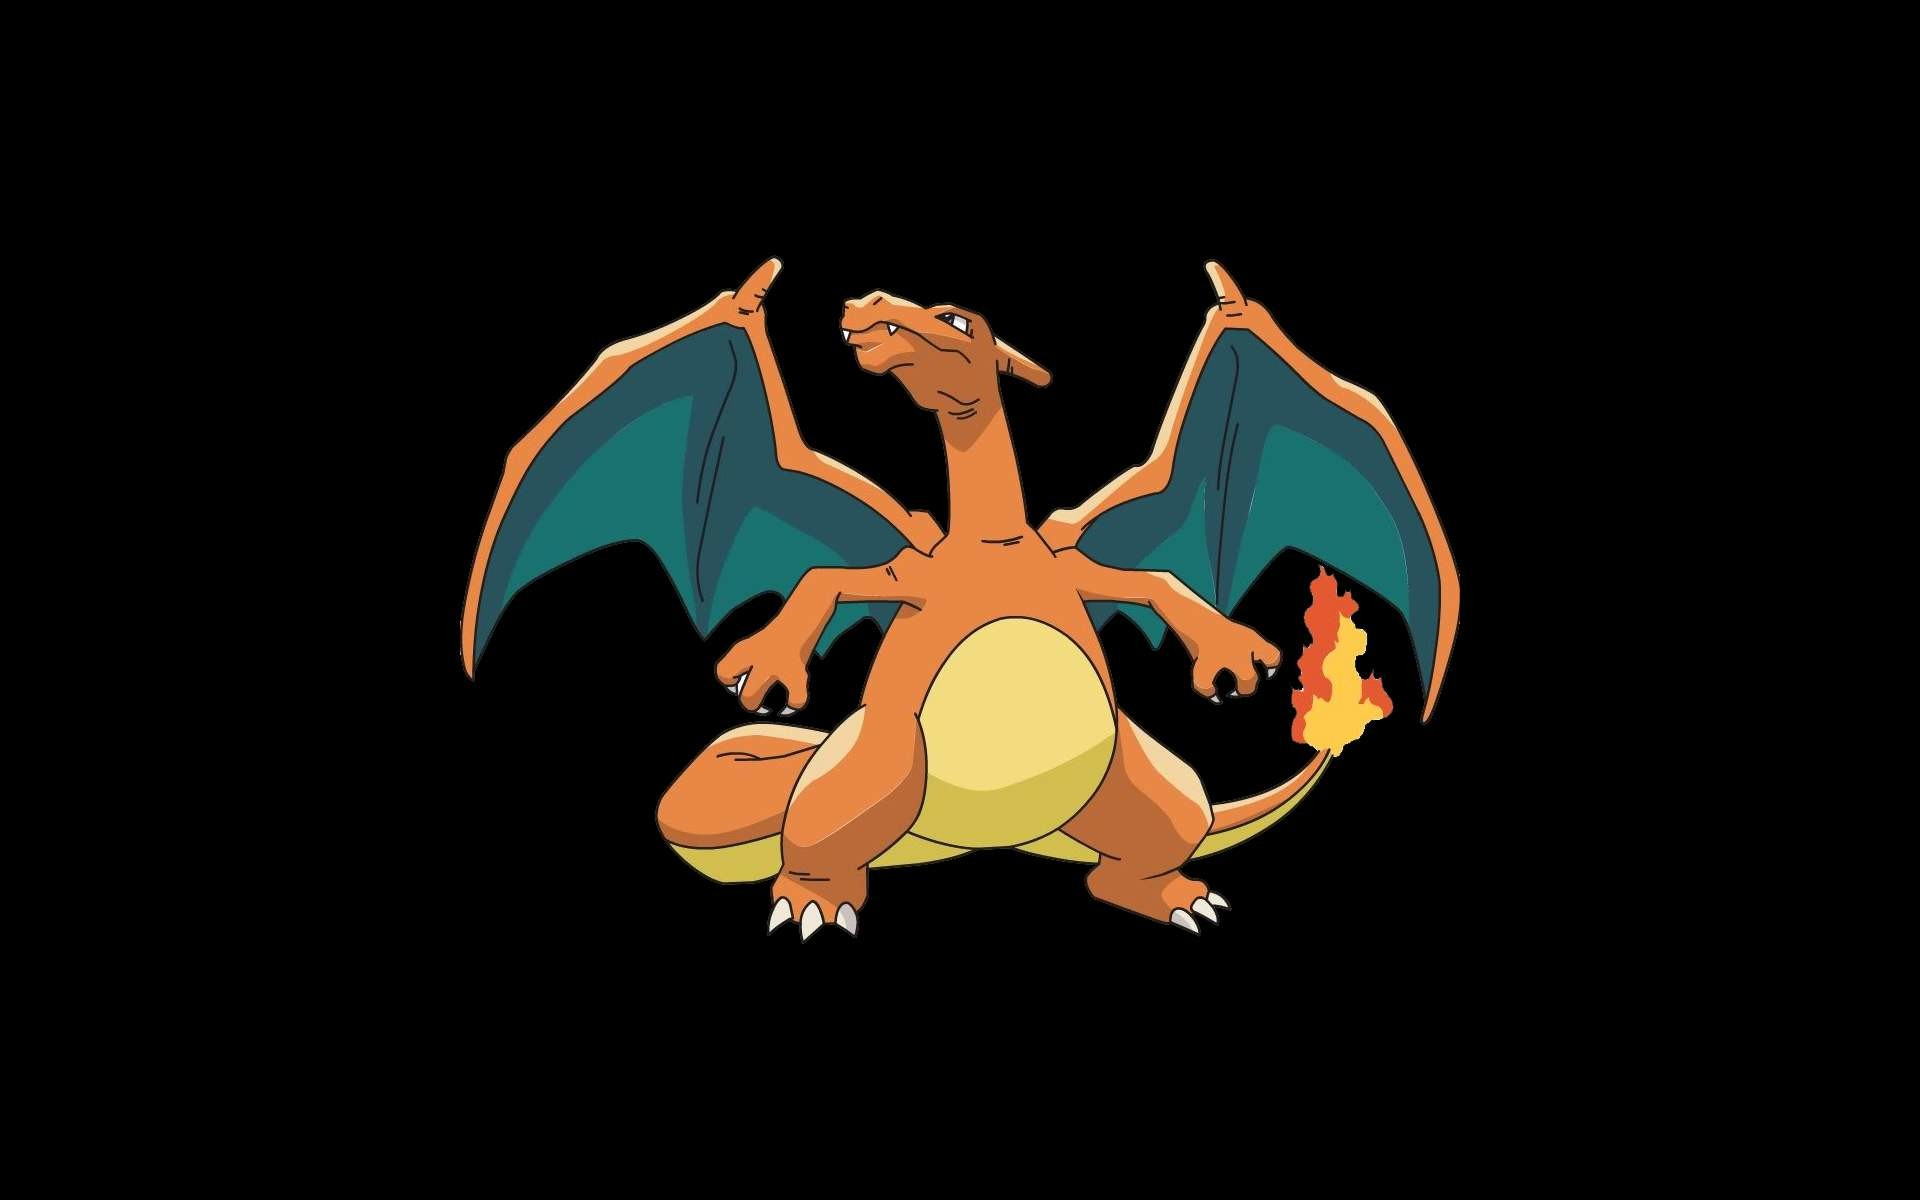 … charizard wallpapers wallpaper cave …